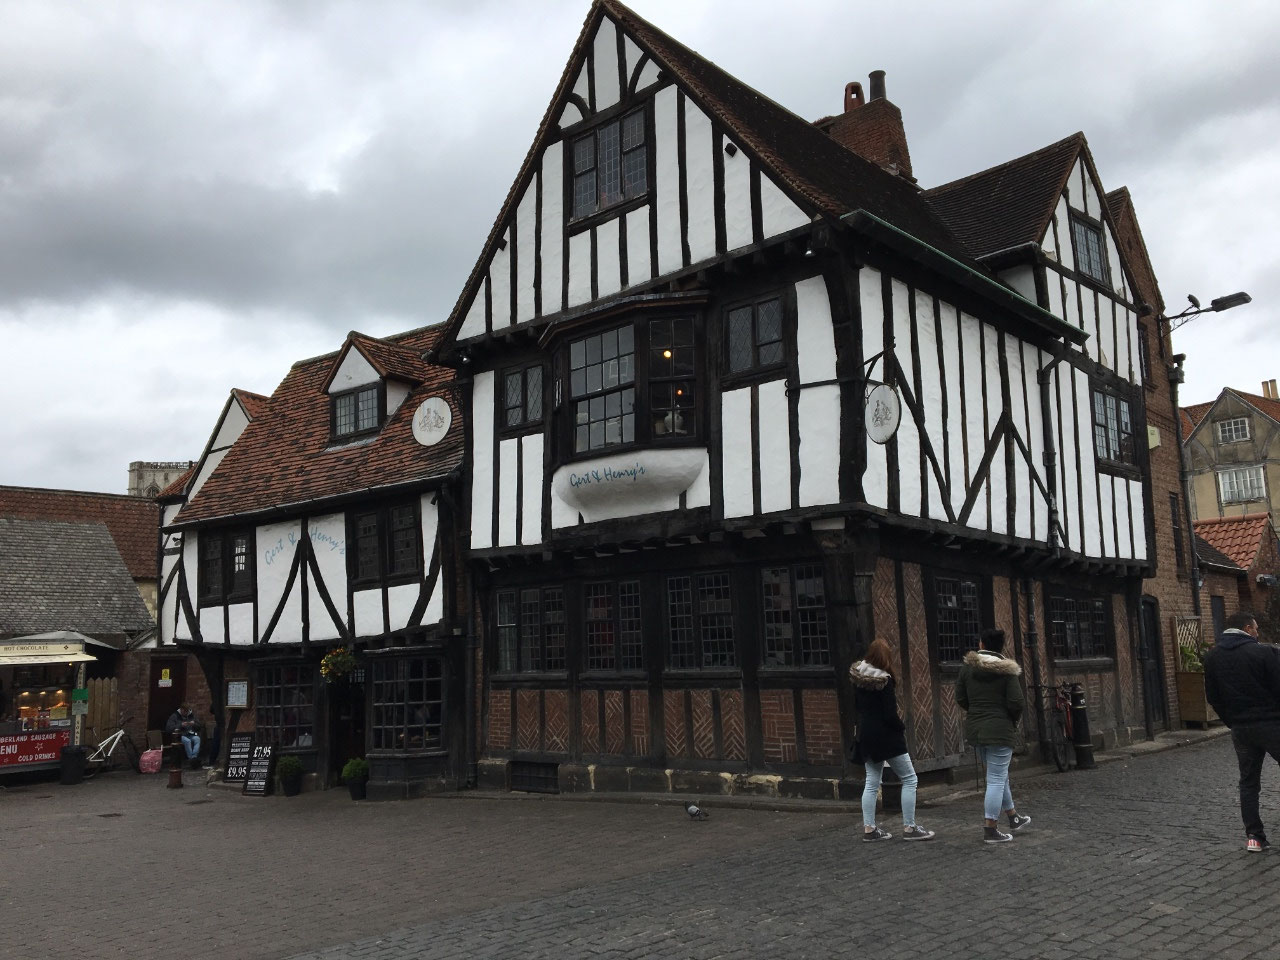 Old building in the Shambles Market